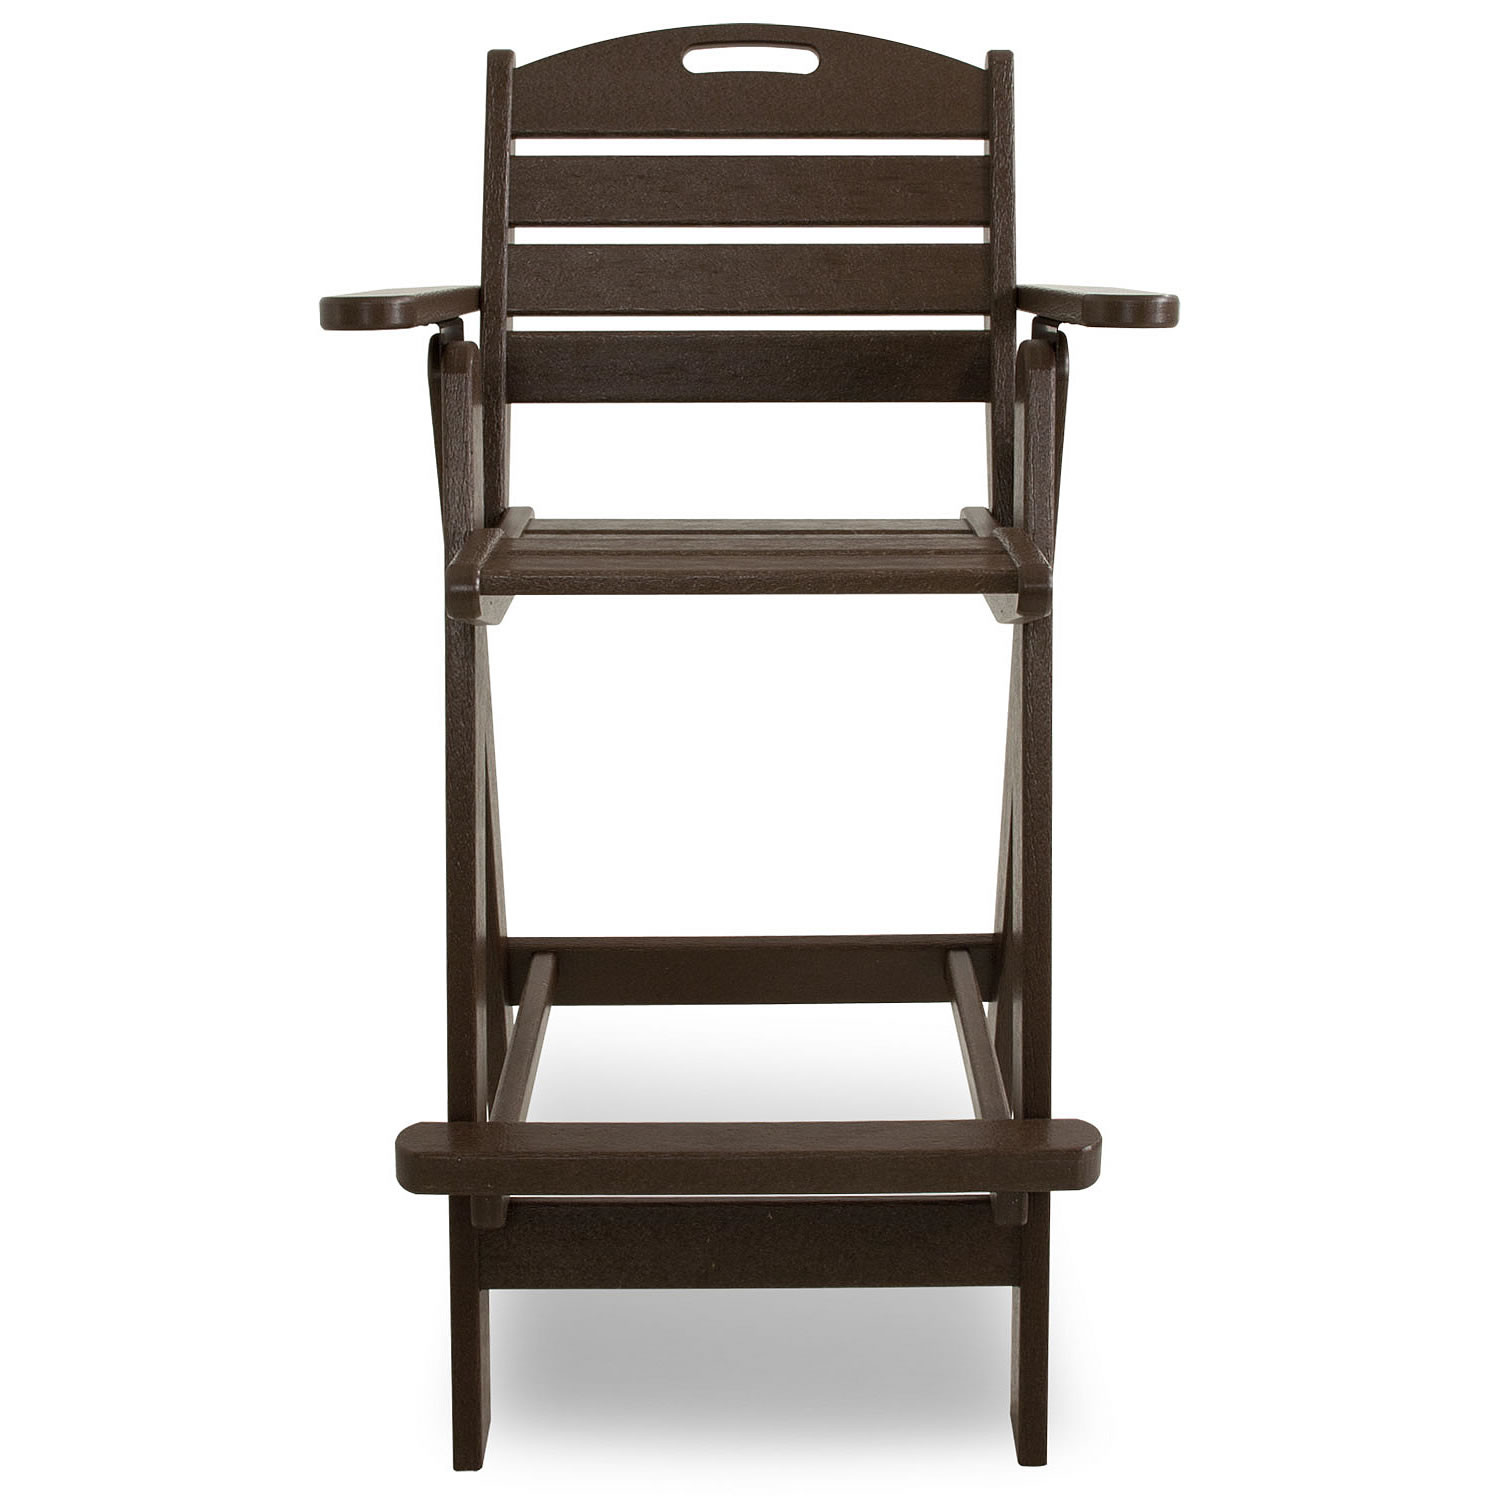 Polywood Nautical Bar Chair Nautical Collection Polywood Outdoor Furniture Collections